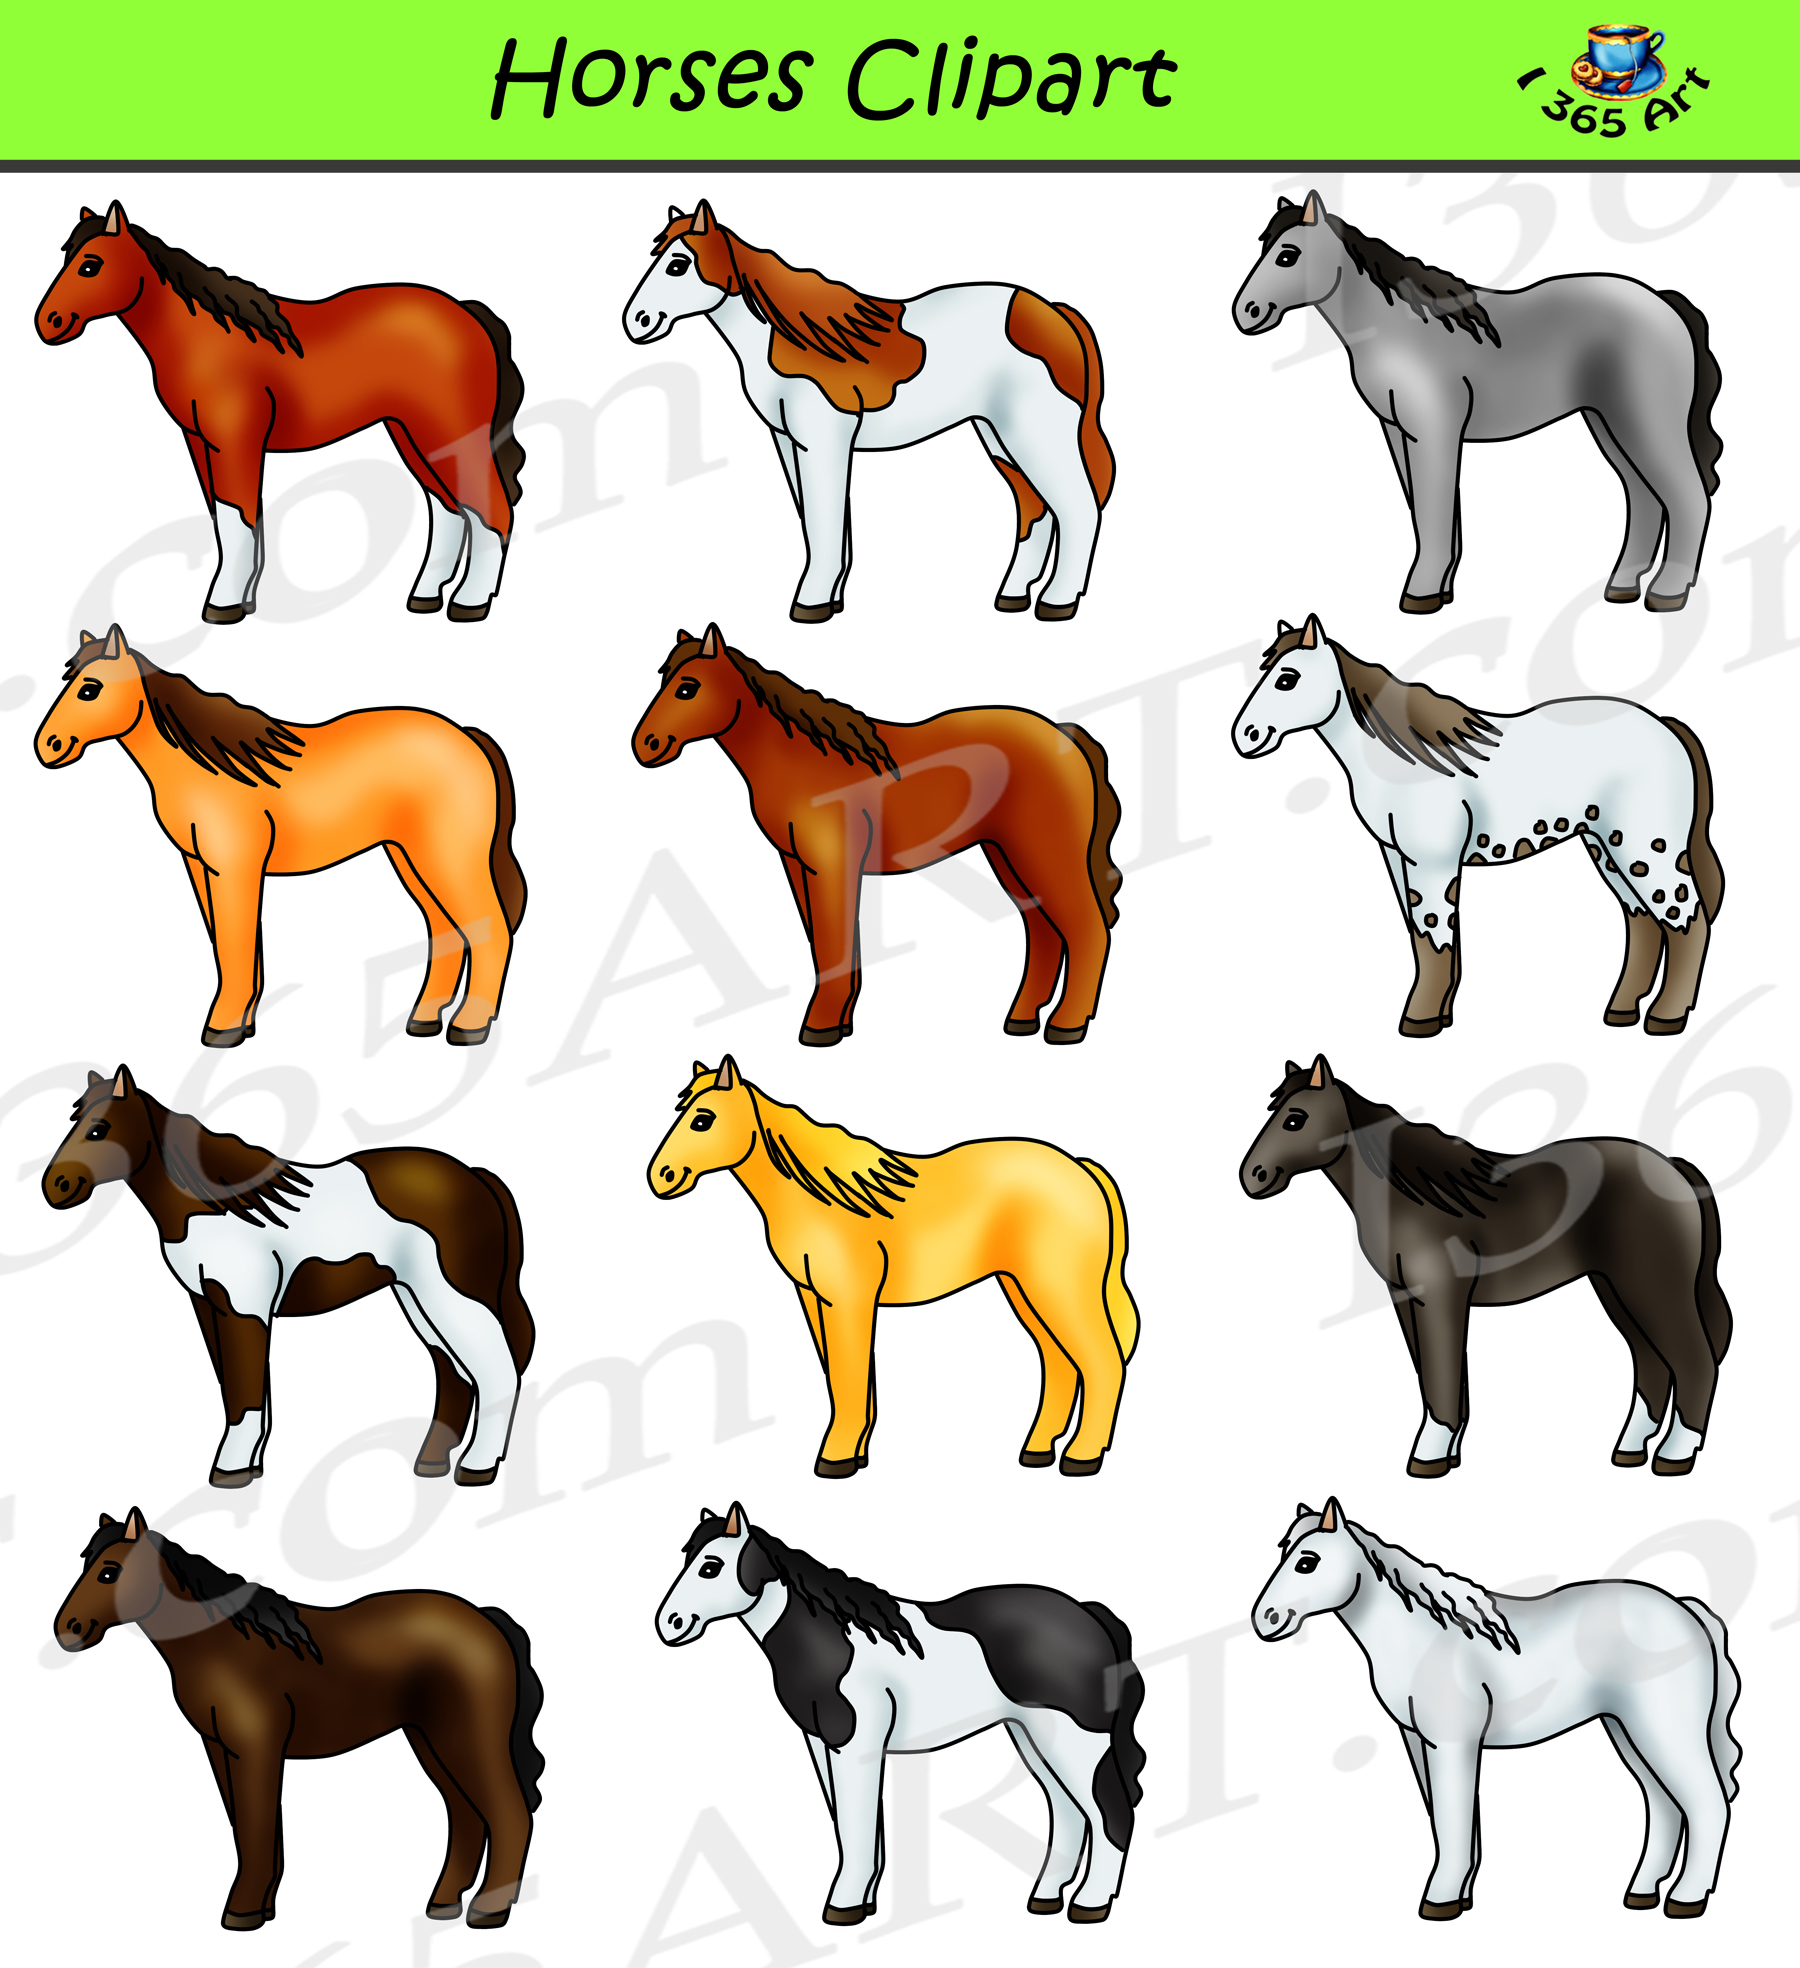 horse clipart pony graphics download commercial by clipart 4 school rh clipart4school com horse clip art silhouette horse clip art silhouette